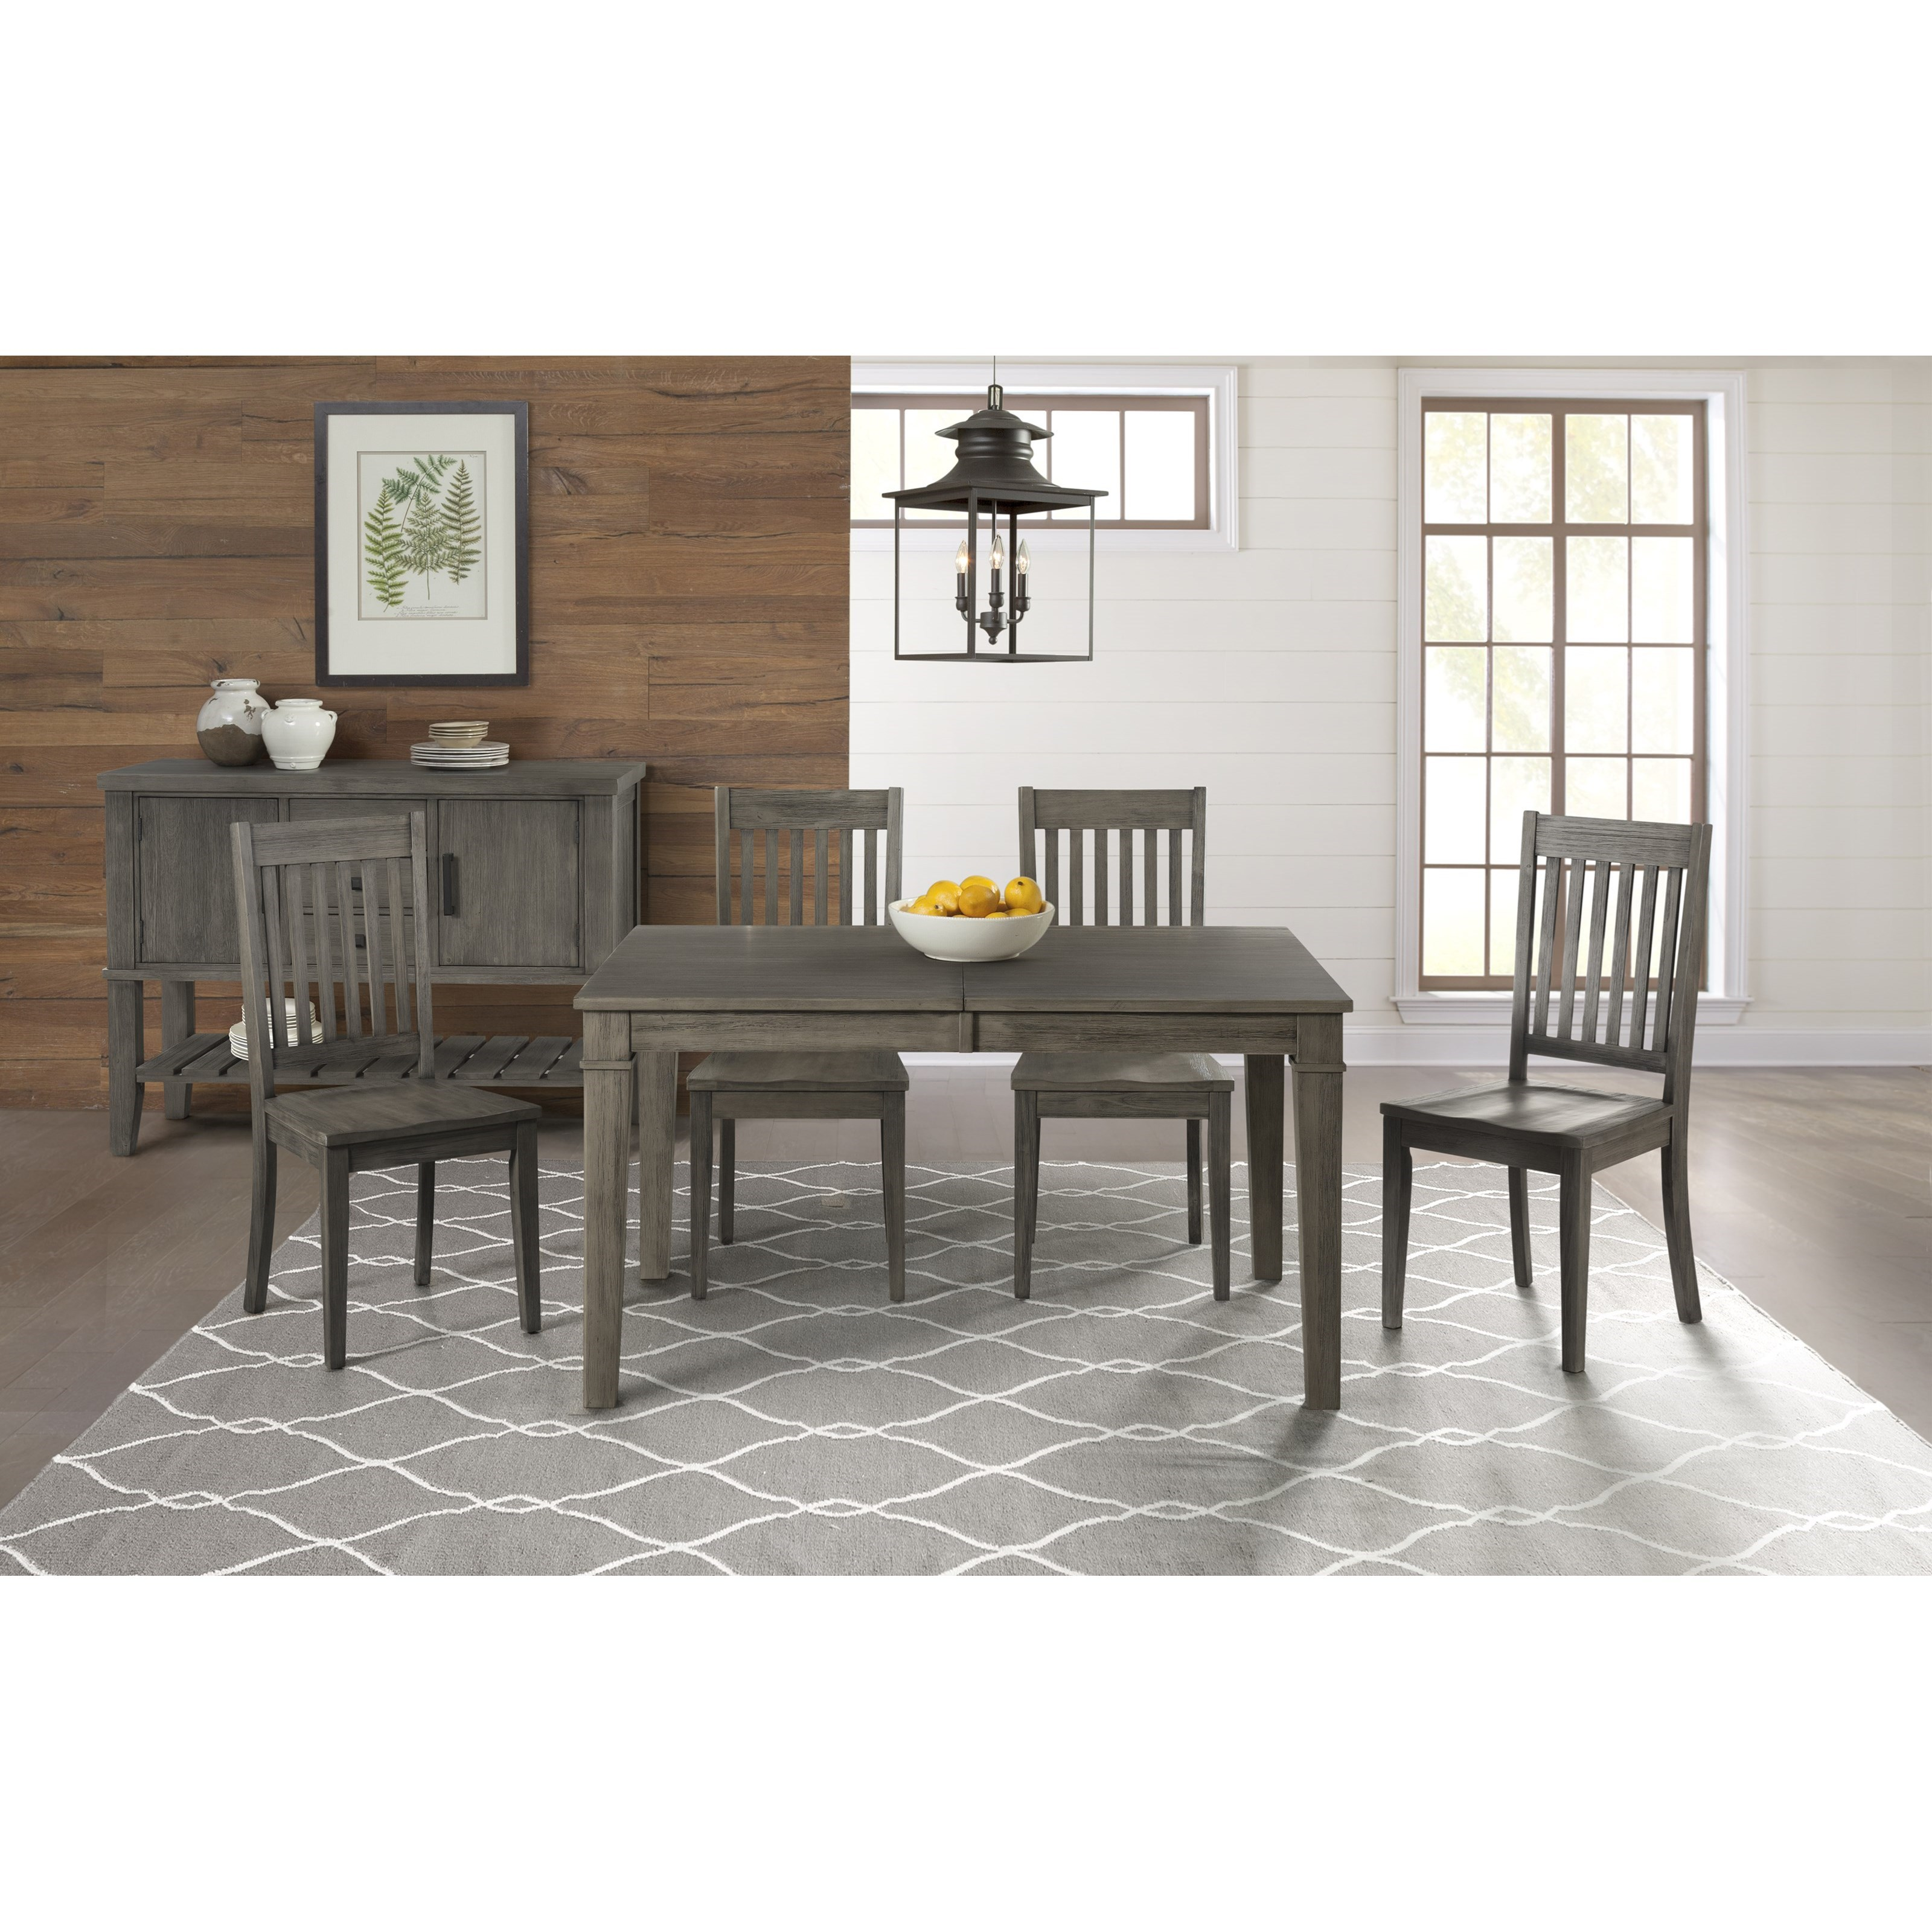 Huron Casual Dining Room Group by AAmerica at Zak's Home